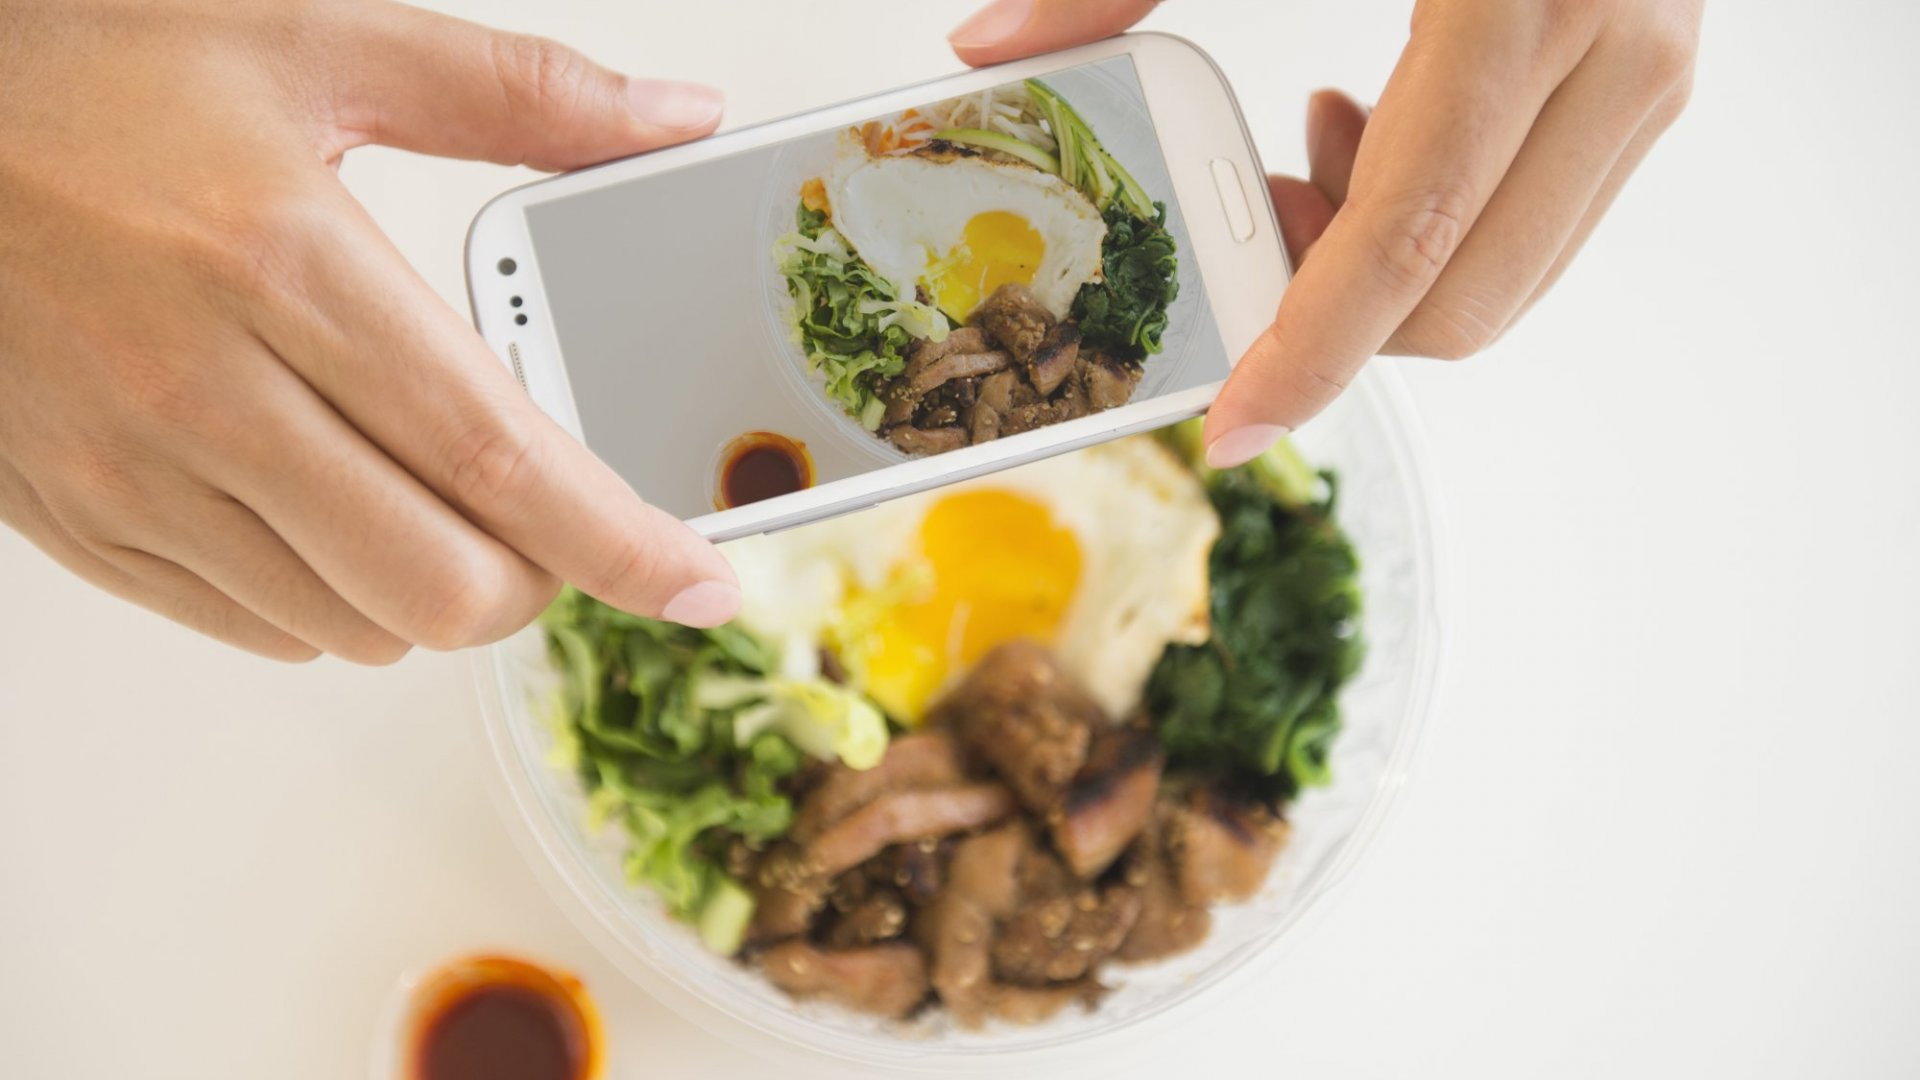 Take a Photo, Log Your Meal: Lose It Launches a New Feature to Make Food Tracking Easier